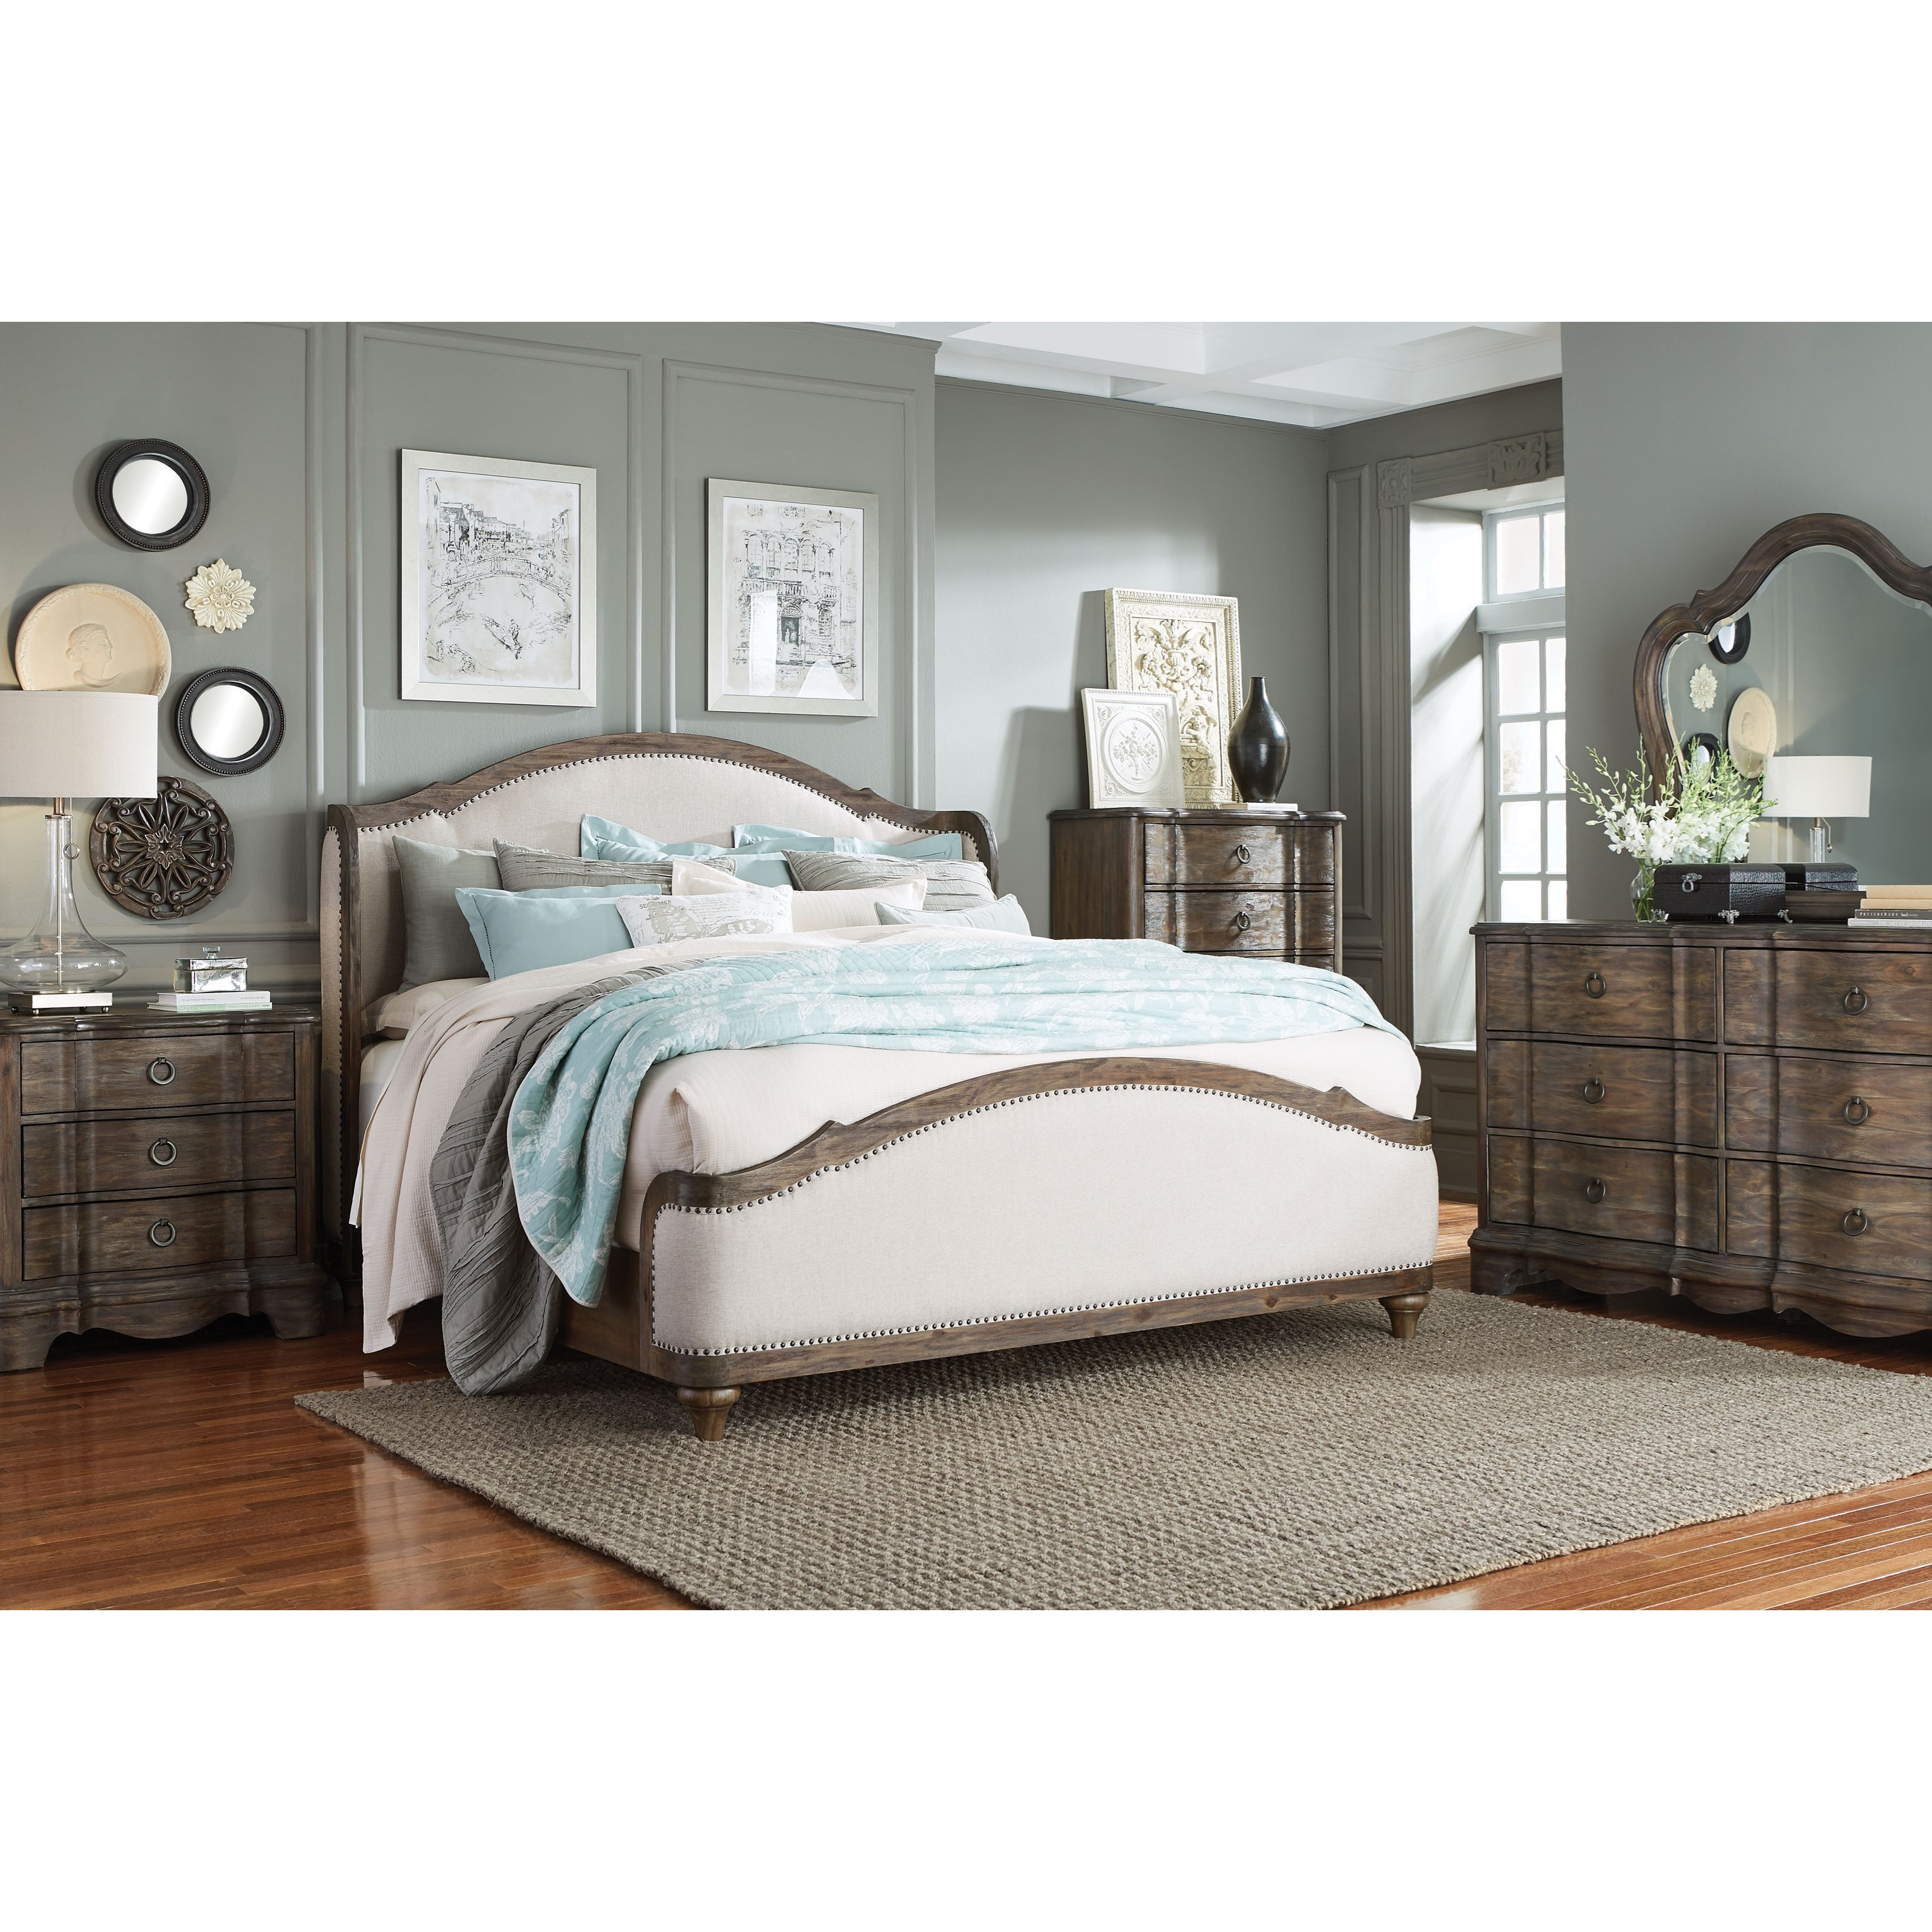 Bedroom Furniture Sets Bedroom Furniture And Decorating Ideas Bedroom Wall Art For Girls Bedroom Paint Schemes Colors: Standard Furniture Parliament Queen Upholstered Camelback